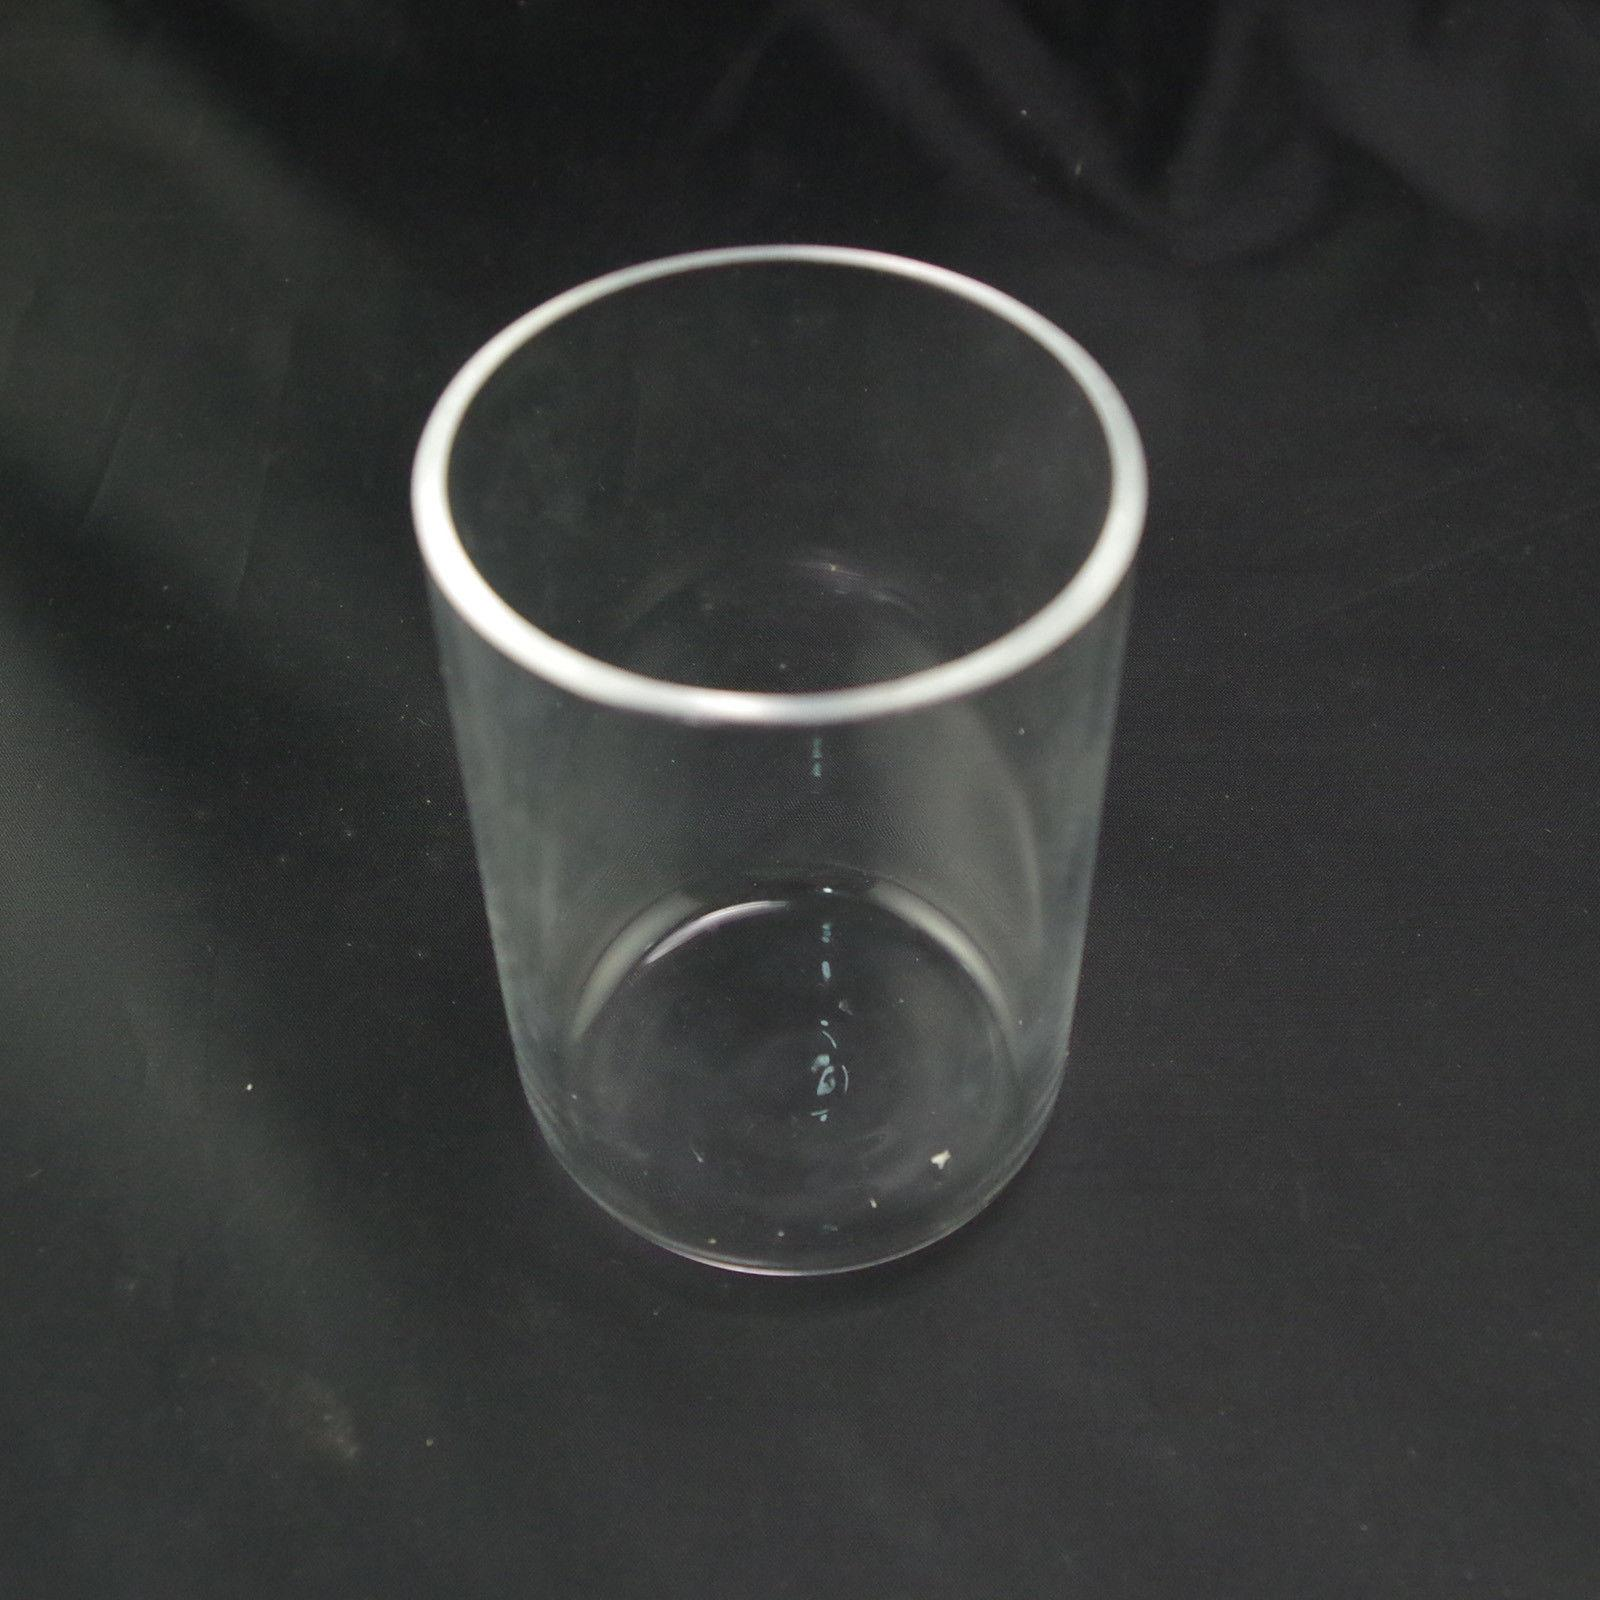 5ml Quartz Crucible 99.9% SiO2 Silica Crucible 1.5mm Thickness Melting Point 1750 Degree C